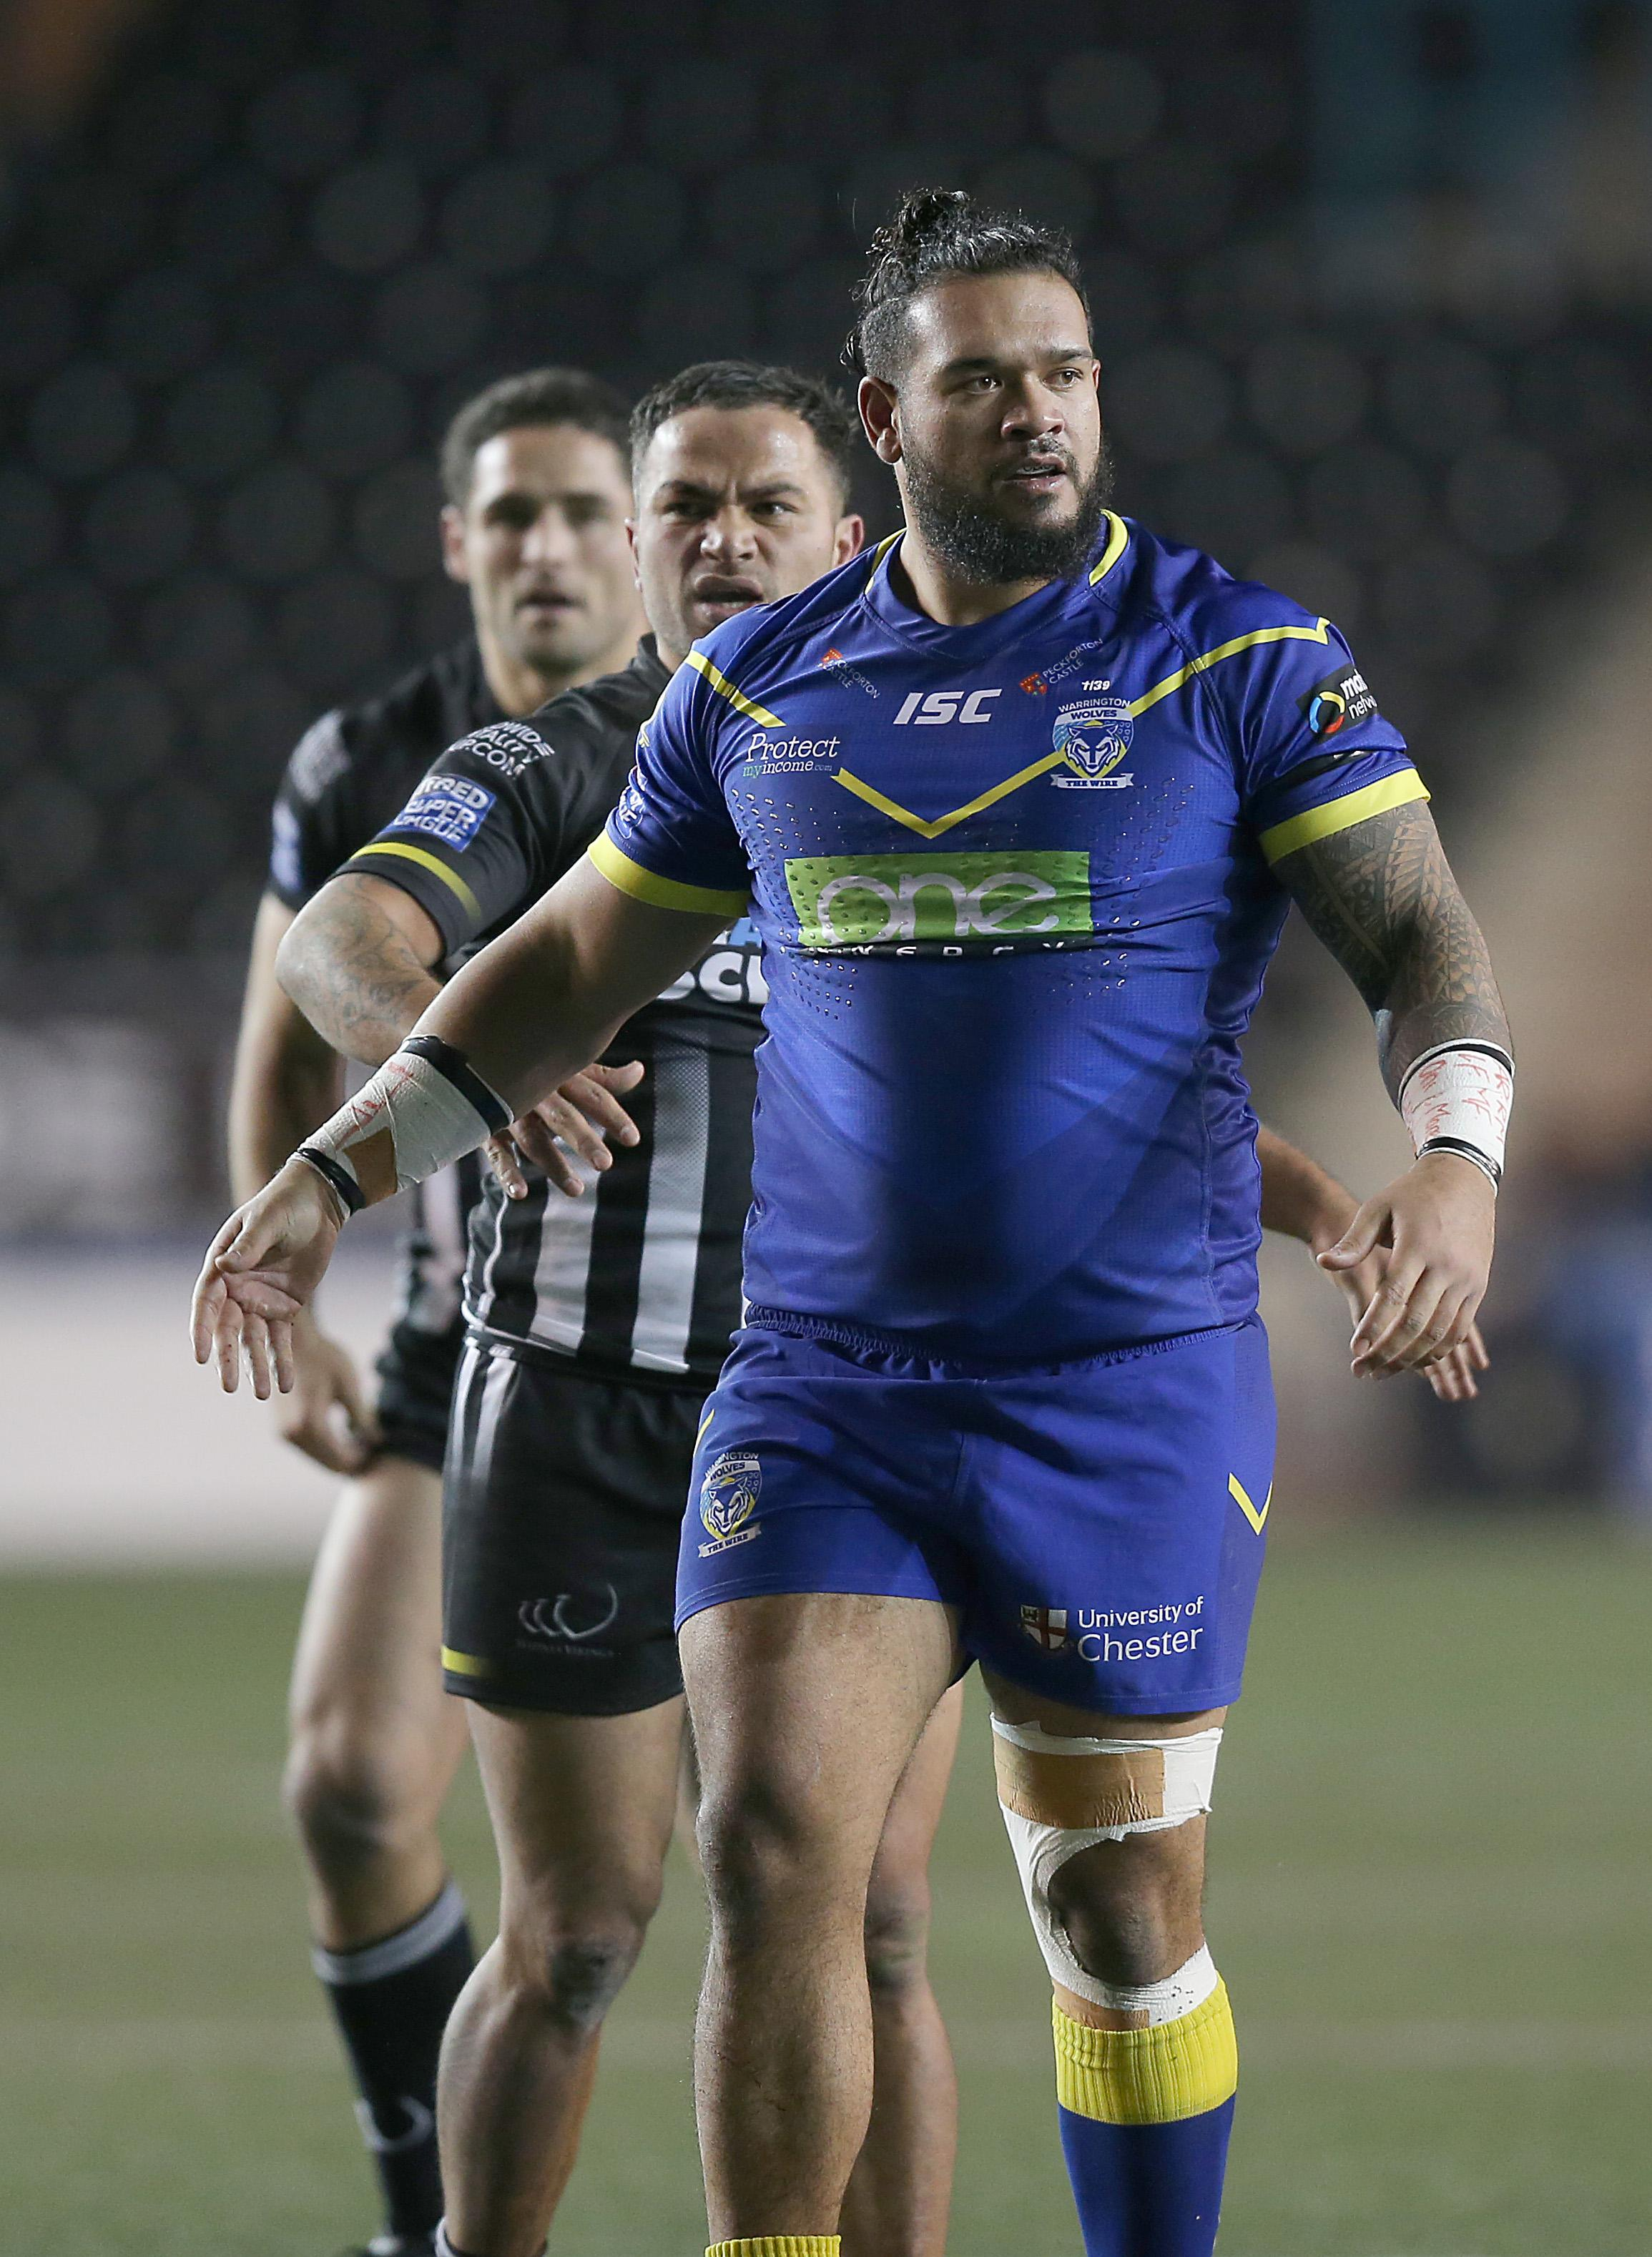 Warrington ace Ben Murdoch-Masila says Wembley could play host to a prayer circle after the Challenge Cup final